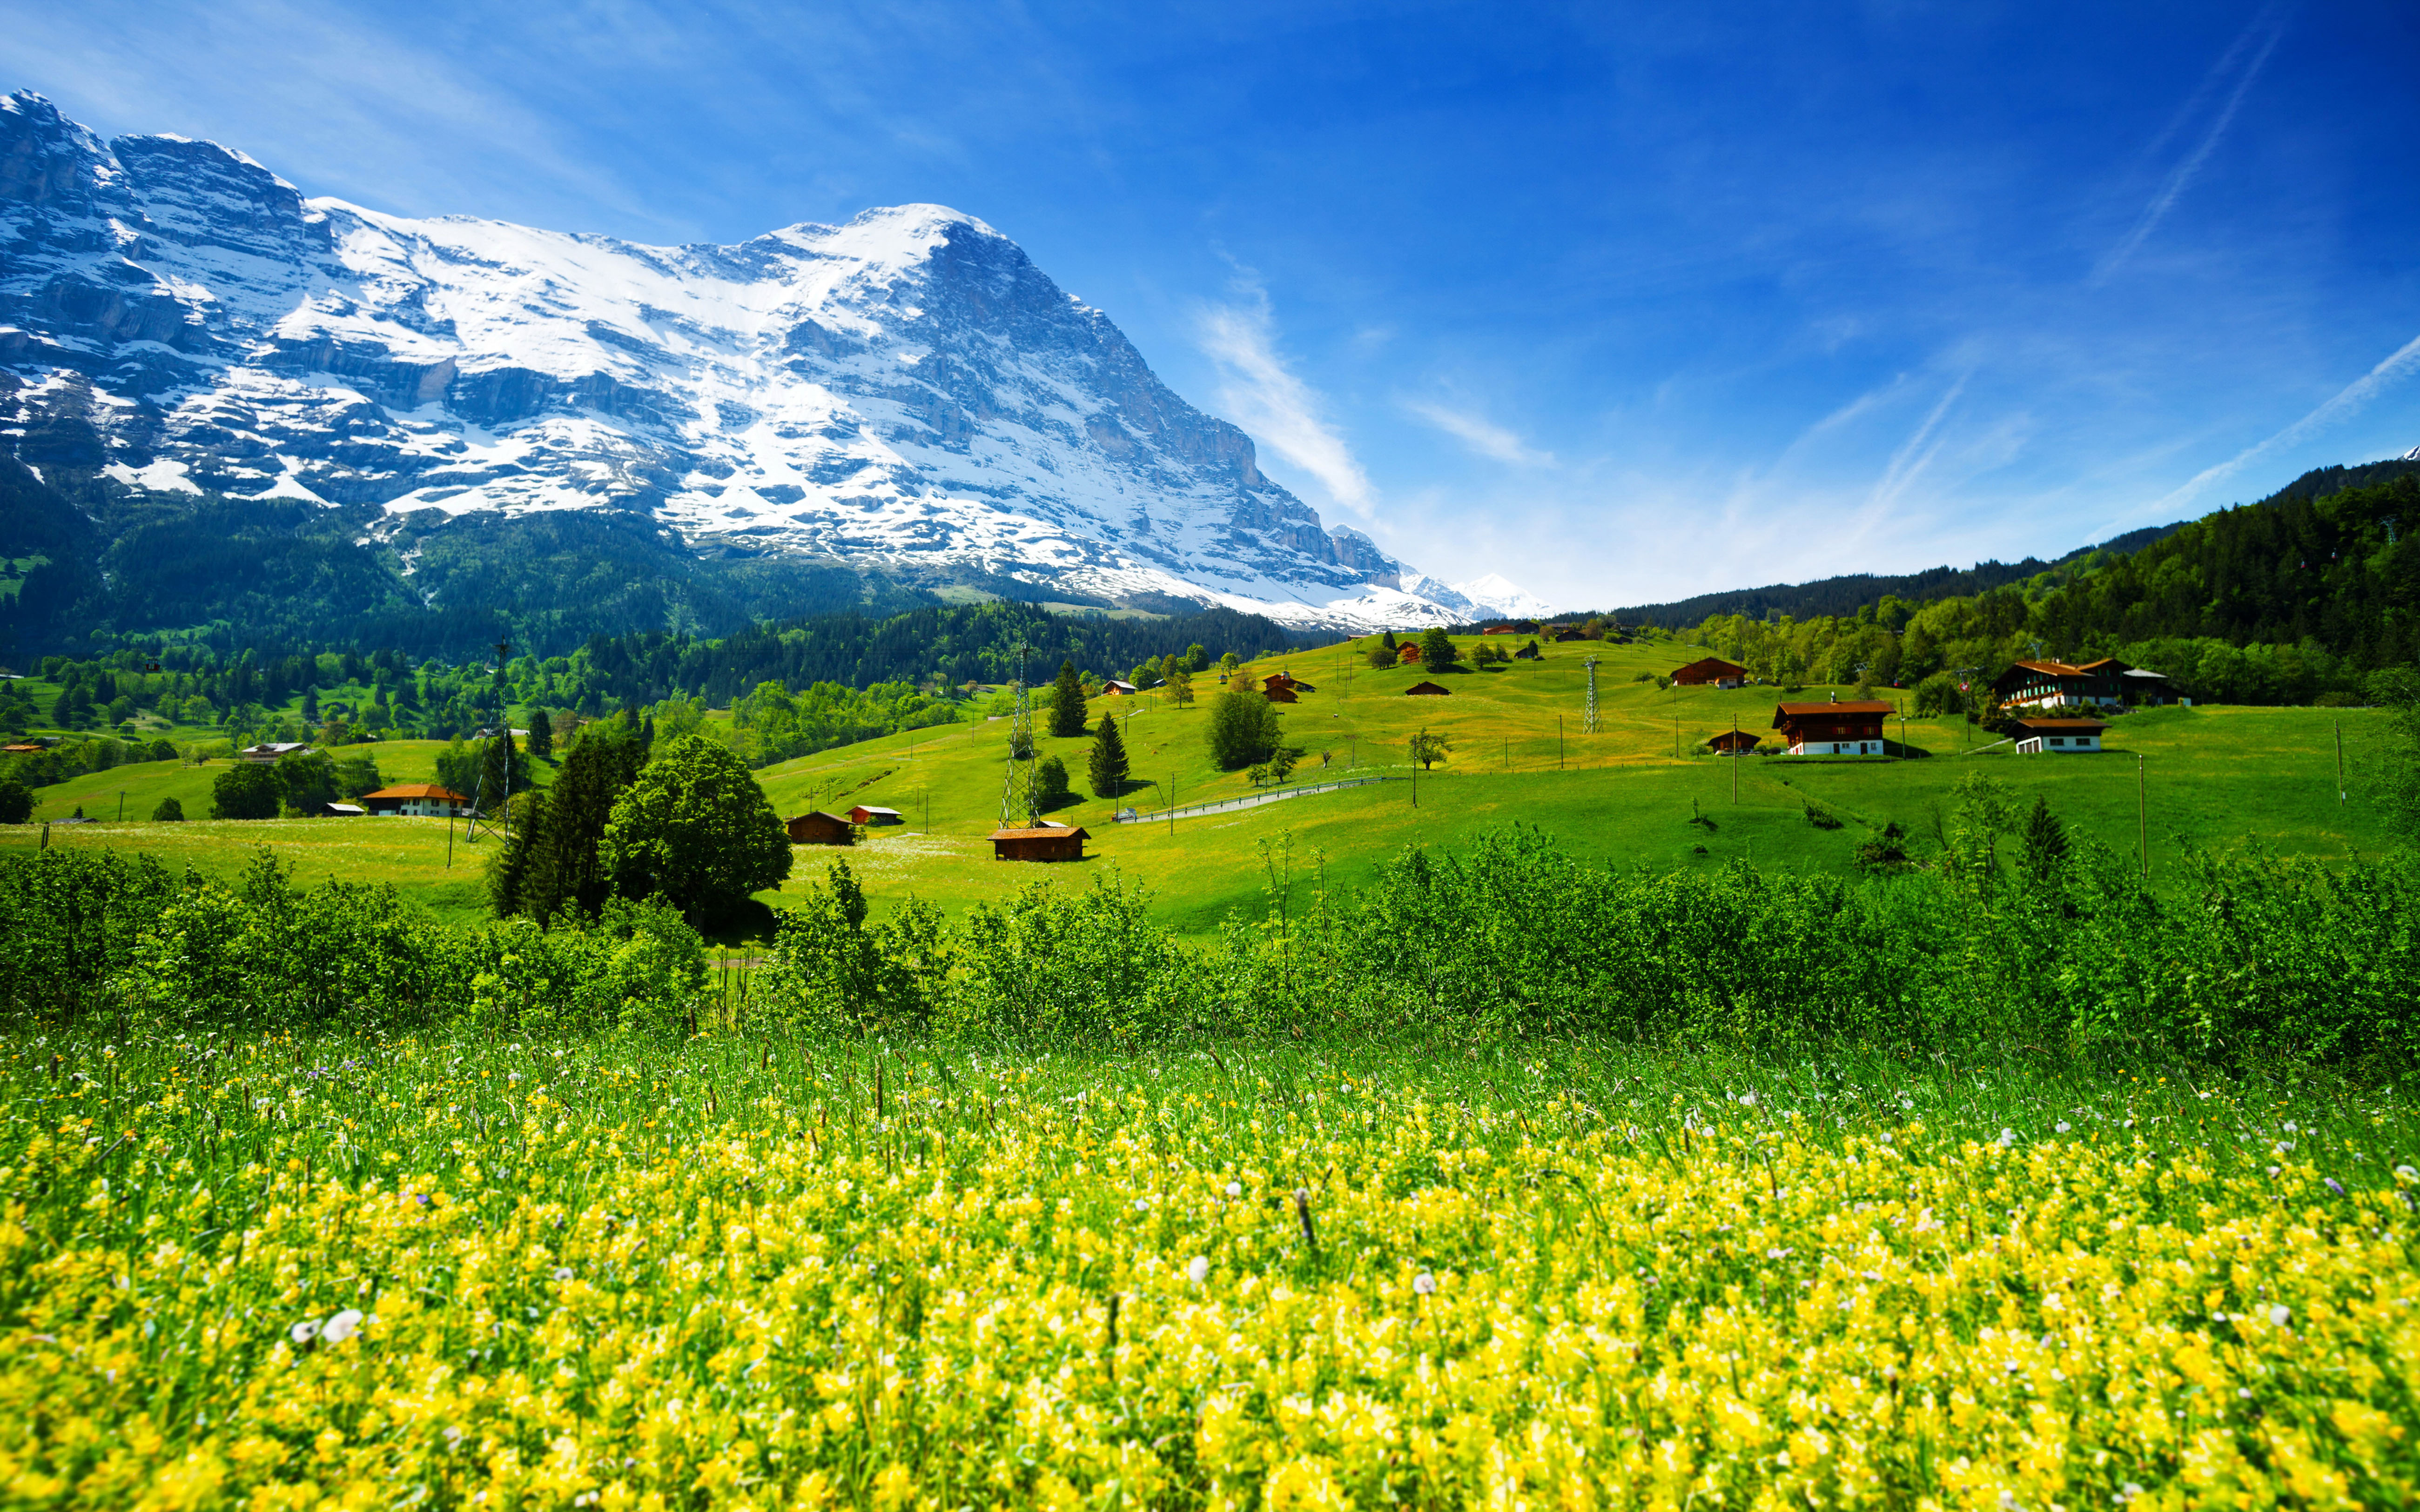 Spring Landscape Nature Switzerland Meadow With Yellow Flowers And Green Grass Mountainous Villages Snowy Mountains Desktop Hd Wallpaper For Pc ...